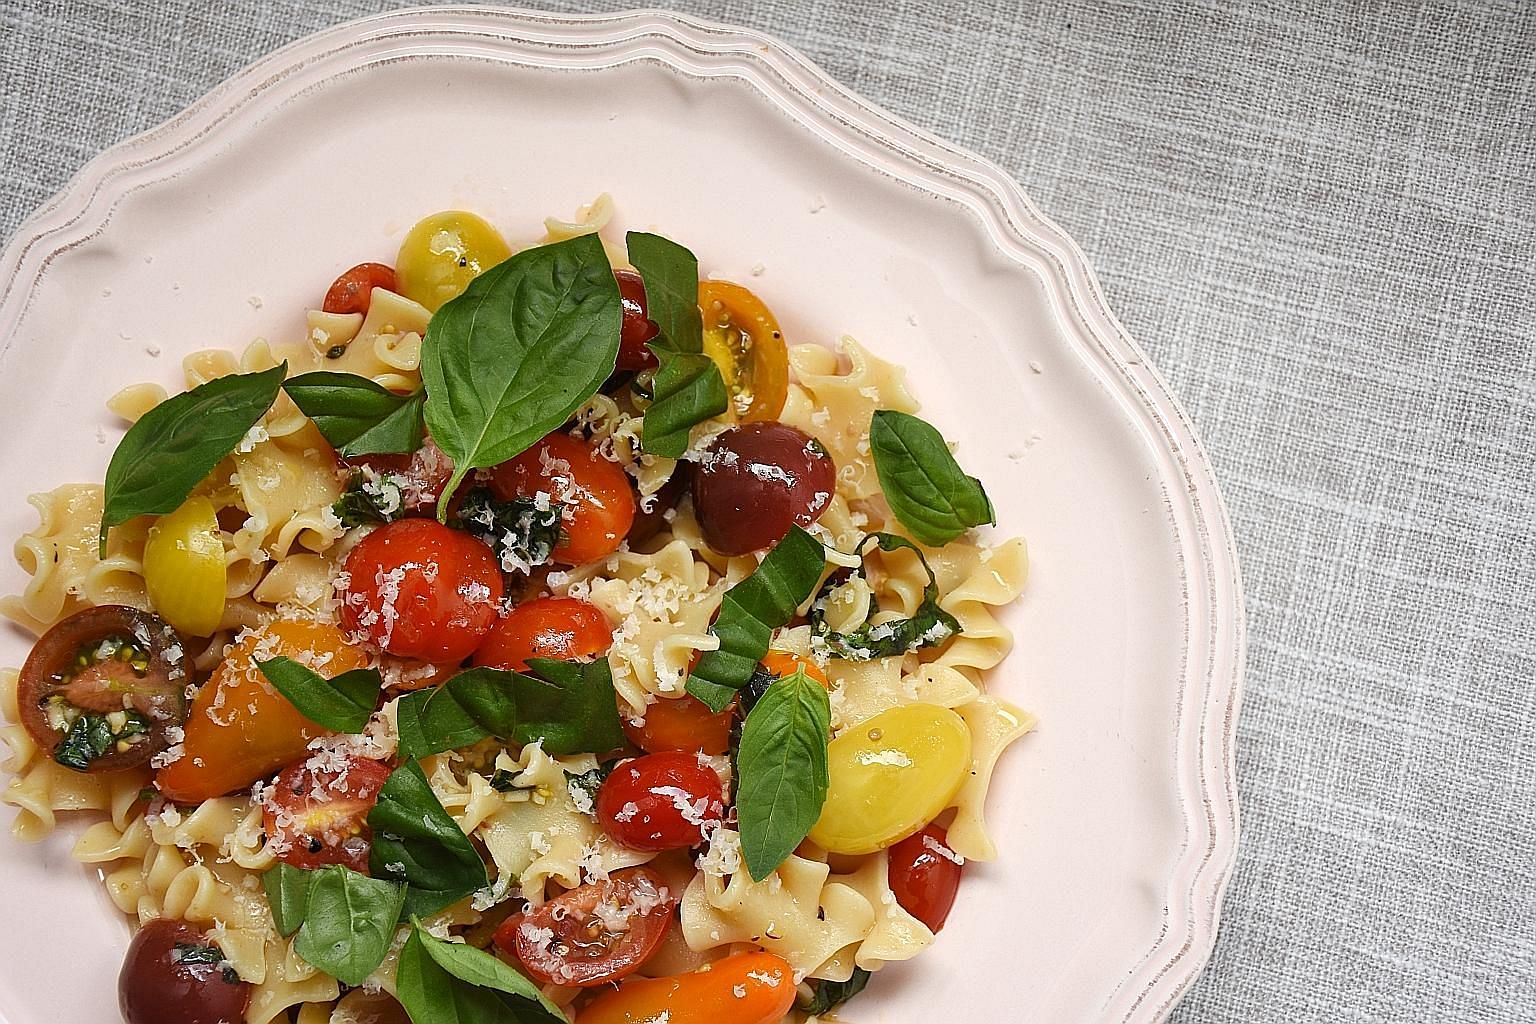 Simply letting a mixture of cherry tomatoes, garlic, anchovies, basil, salt and olive oil sit for a couple of hours creates a huge payoff.